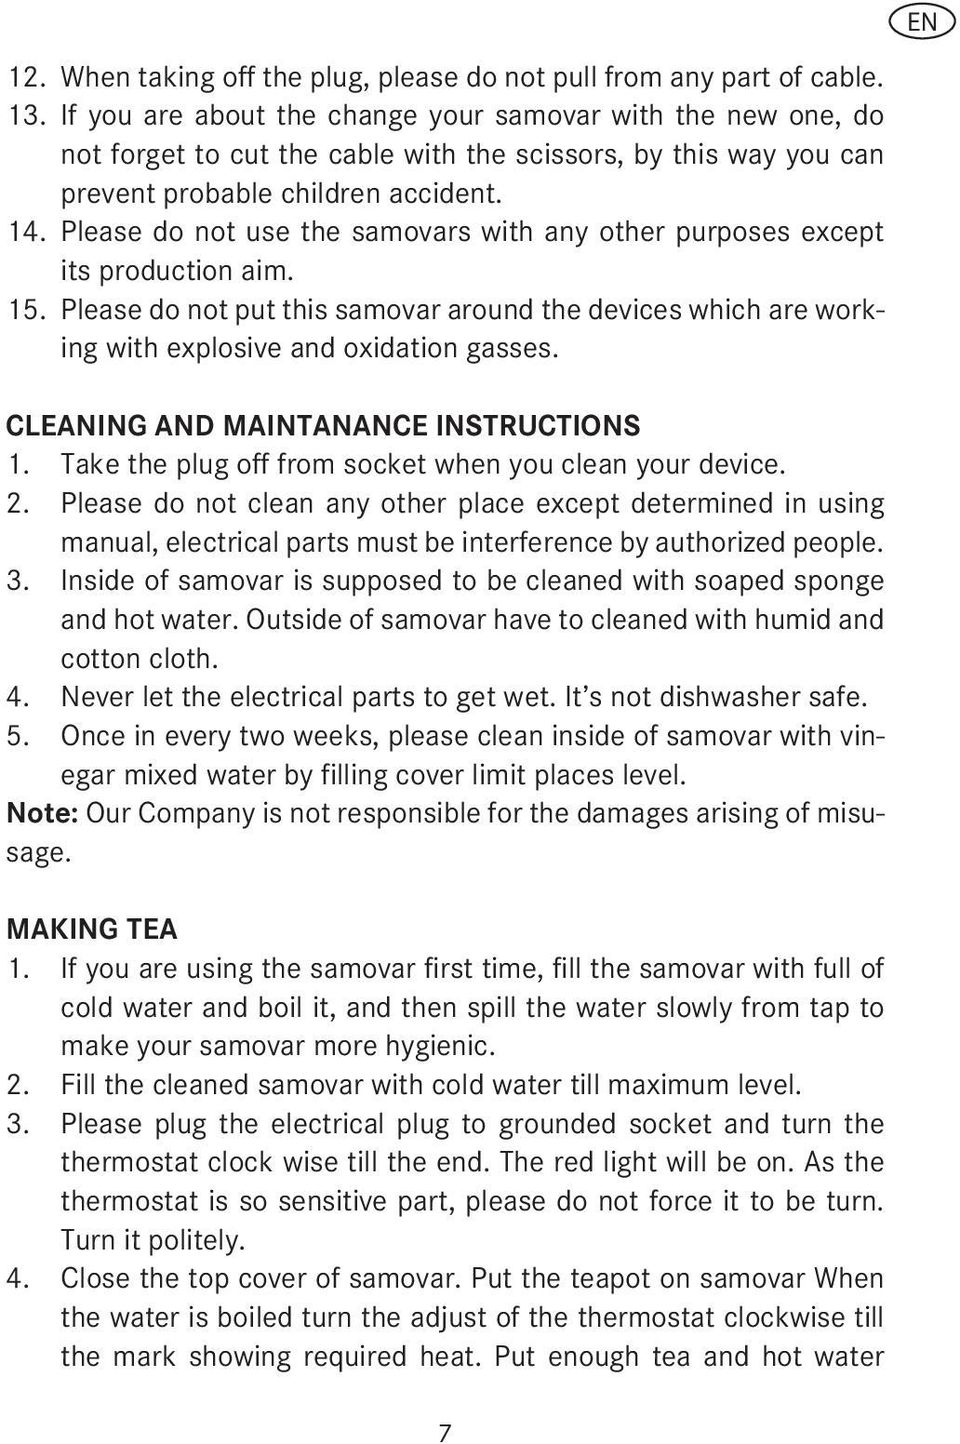 Please do not use the samovars with any other purposes except its production aim. 15. Please do not put this samovar around the devices which are working with explosive and oxidation gasses.